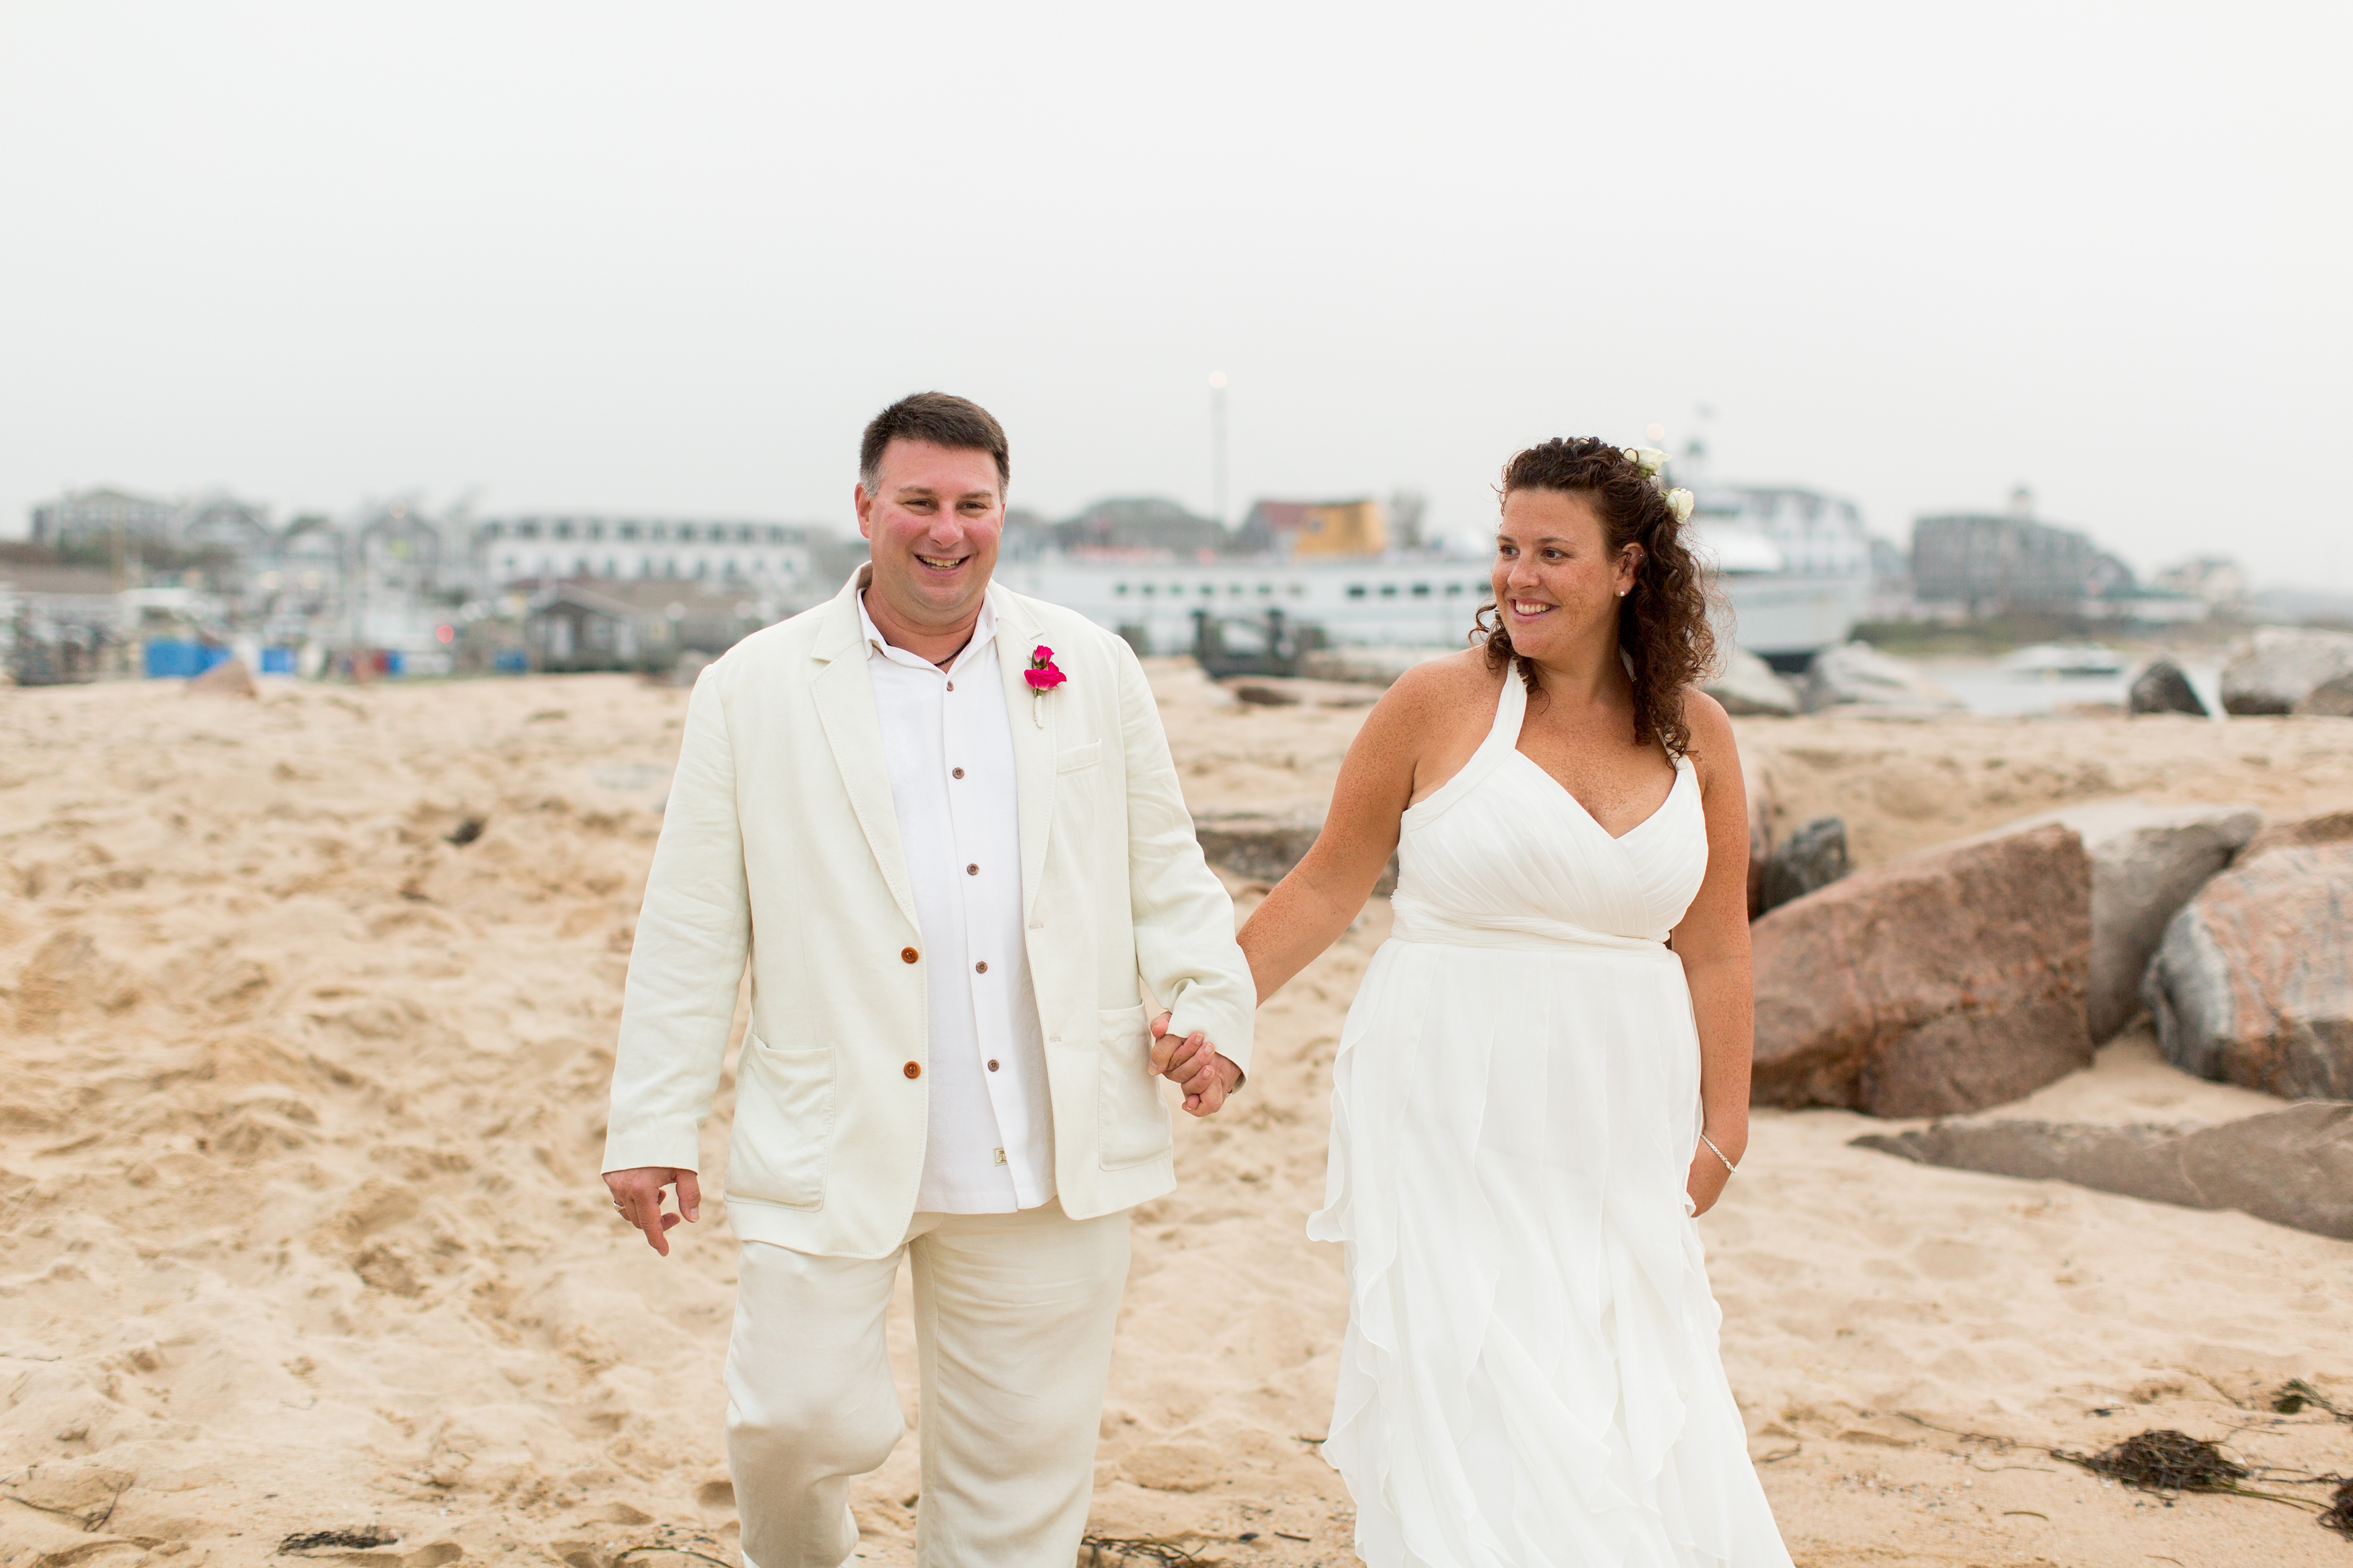 allegra_anderson_photography_block_island_rhode_island_wedding_photographer_spring_house_odell_2016309